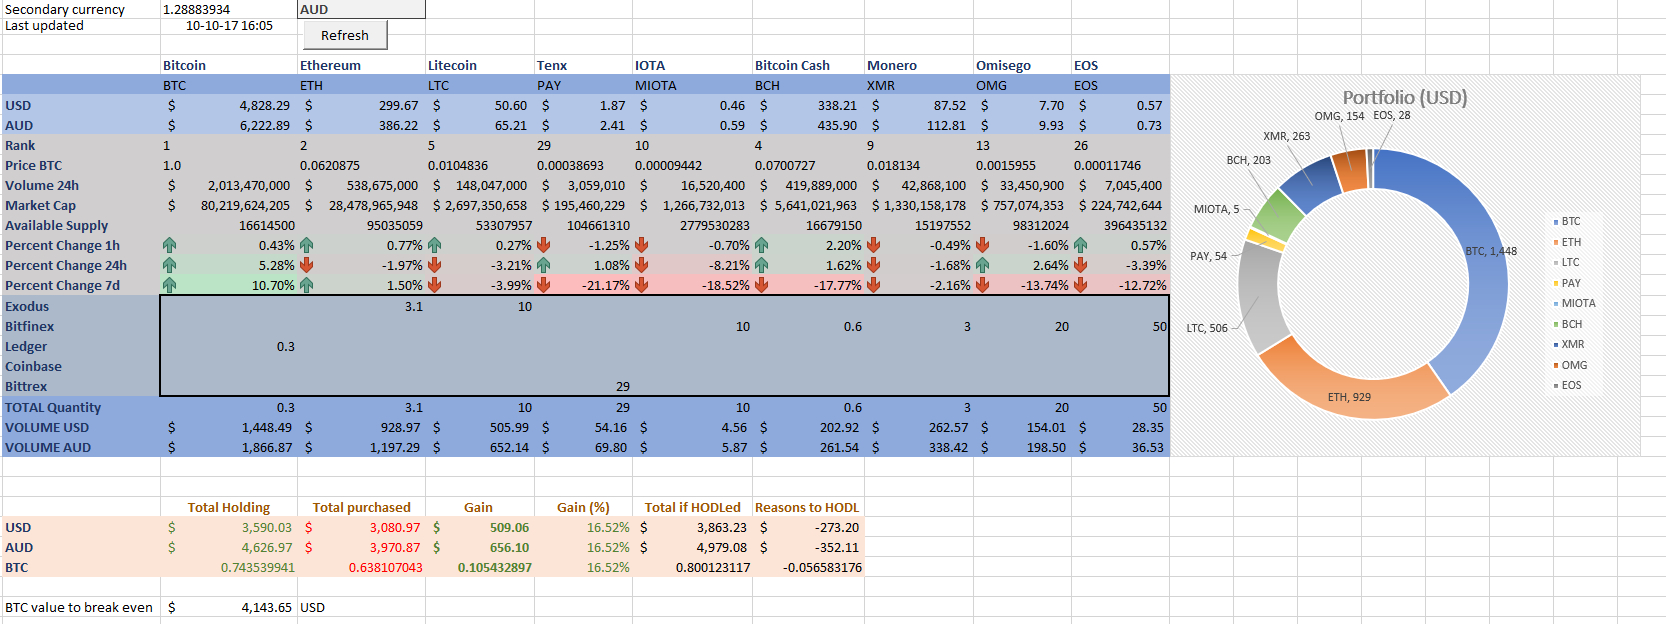 Live Excel Spreadsheet For Excel Crypto Portfolio With Live Price Updates — Steemit